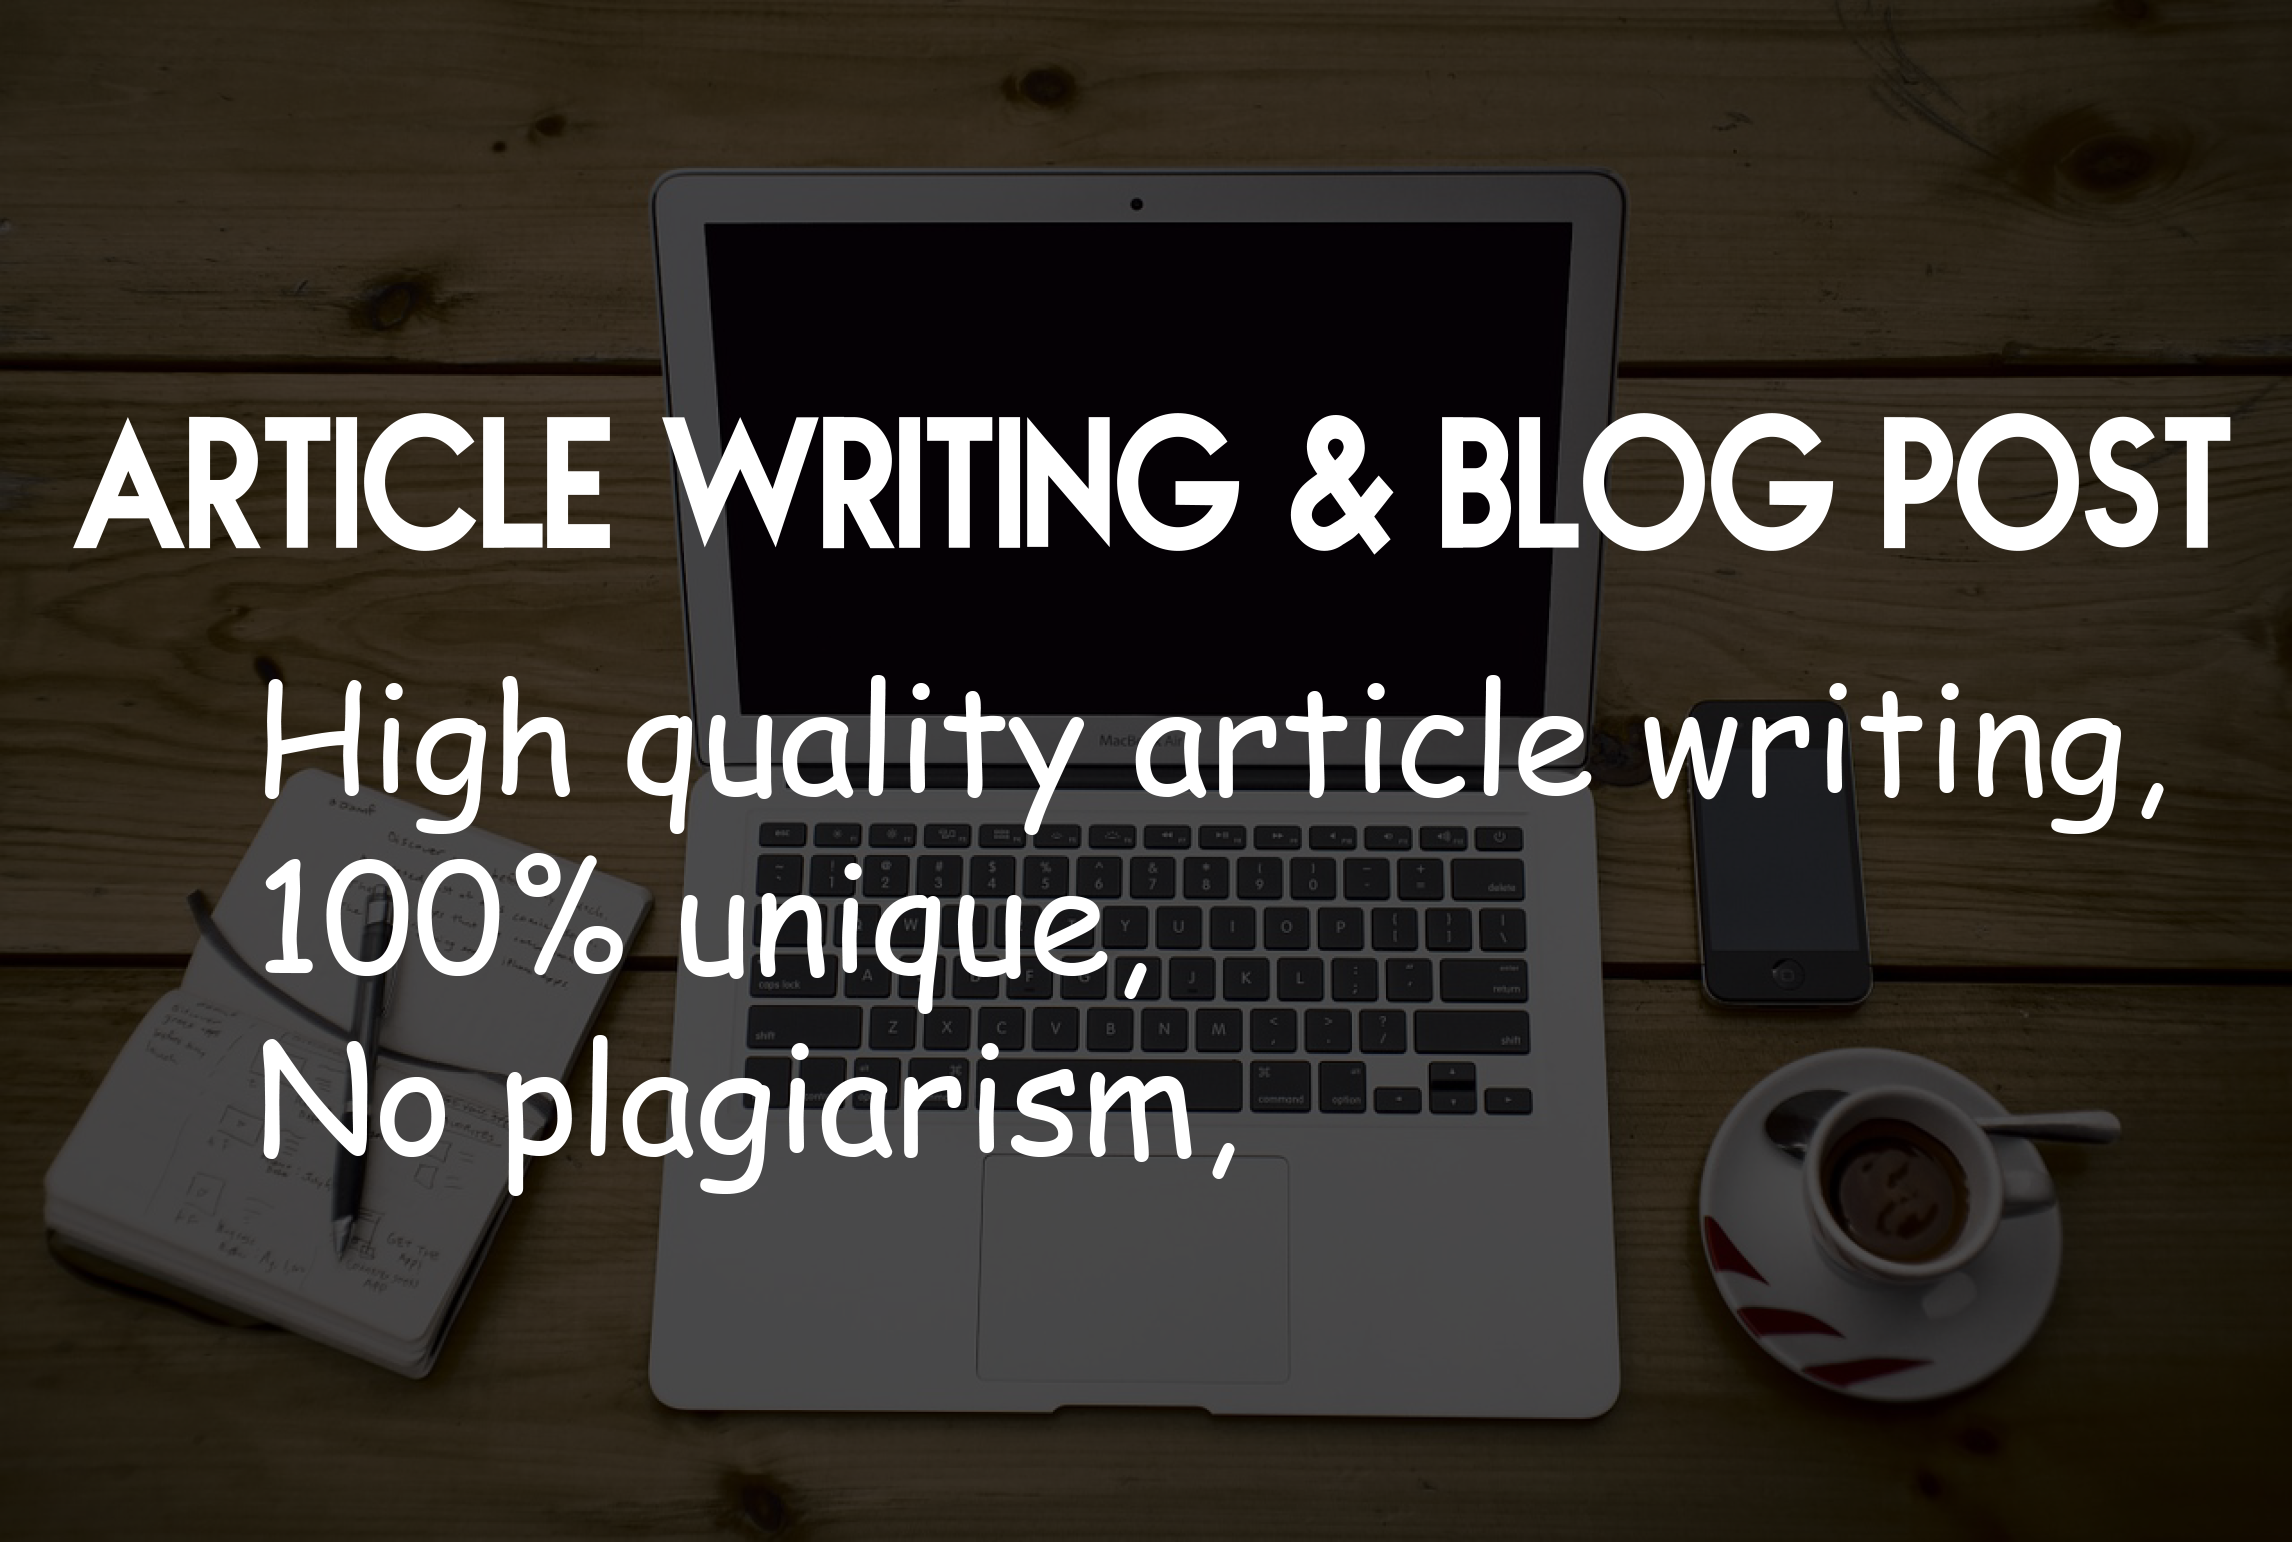 I Provide 10 unique articles writing and blog post